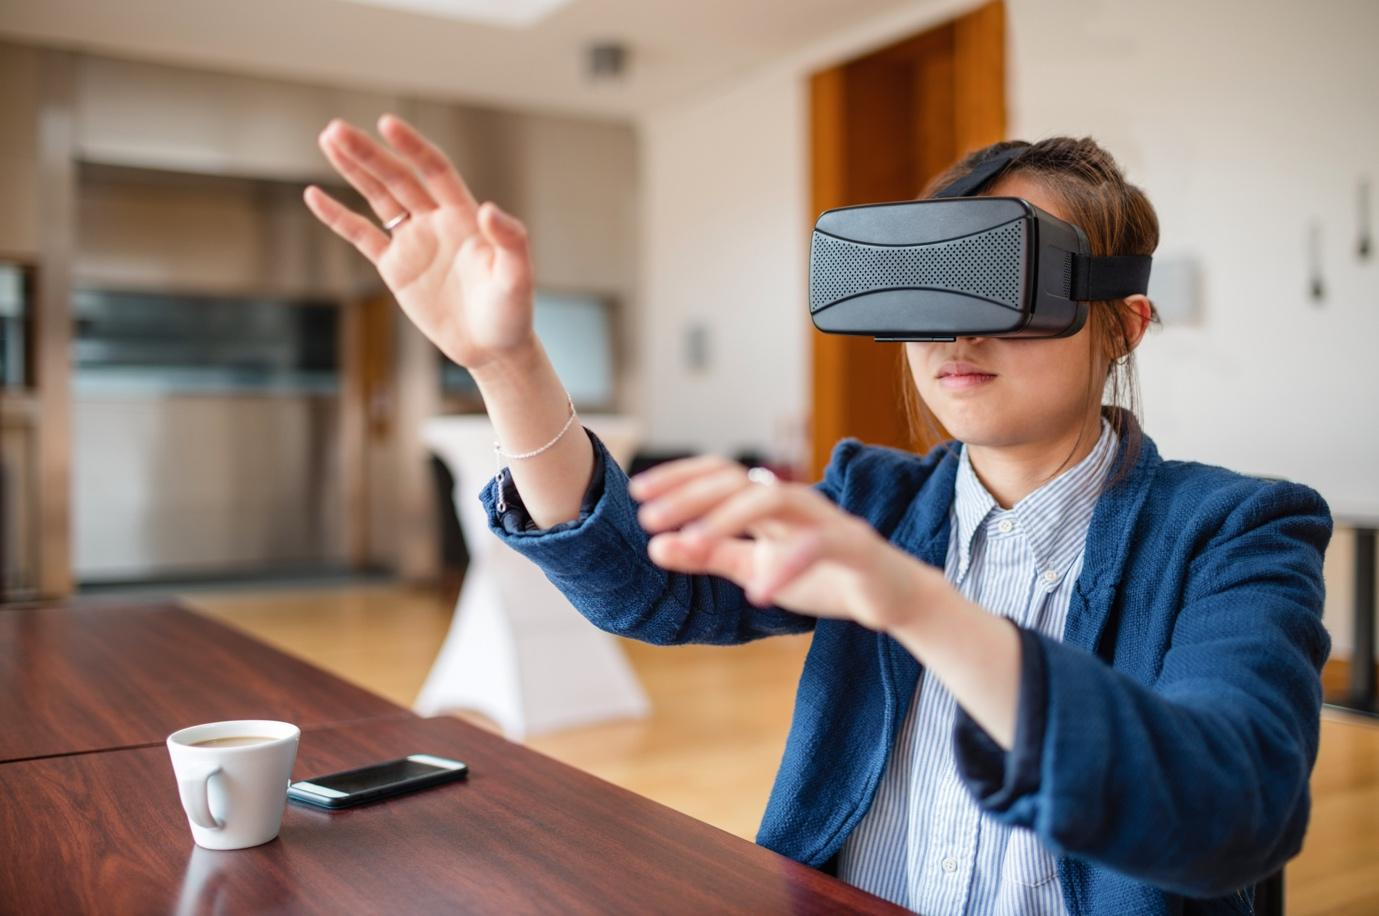 A person wearing a virtual reality headset  Description automatically generated with medium confidence